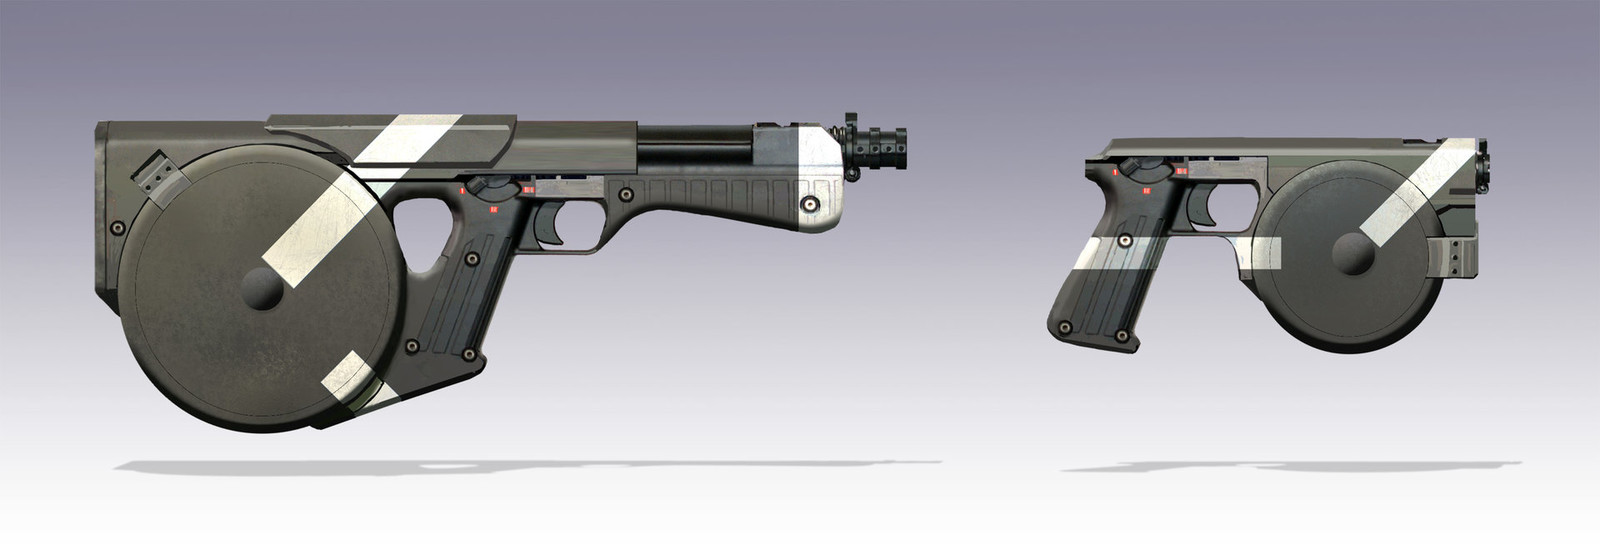 Magnetic accelerator personal defense weapons.  Personal work.